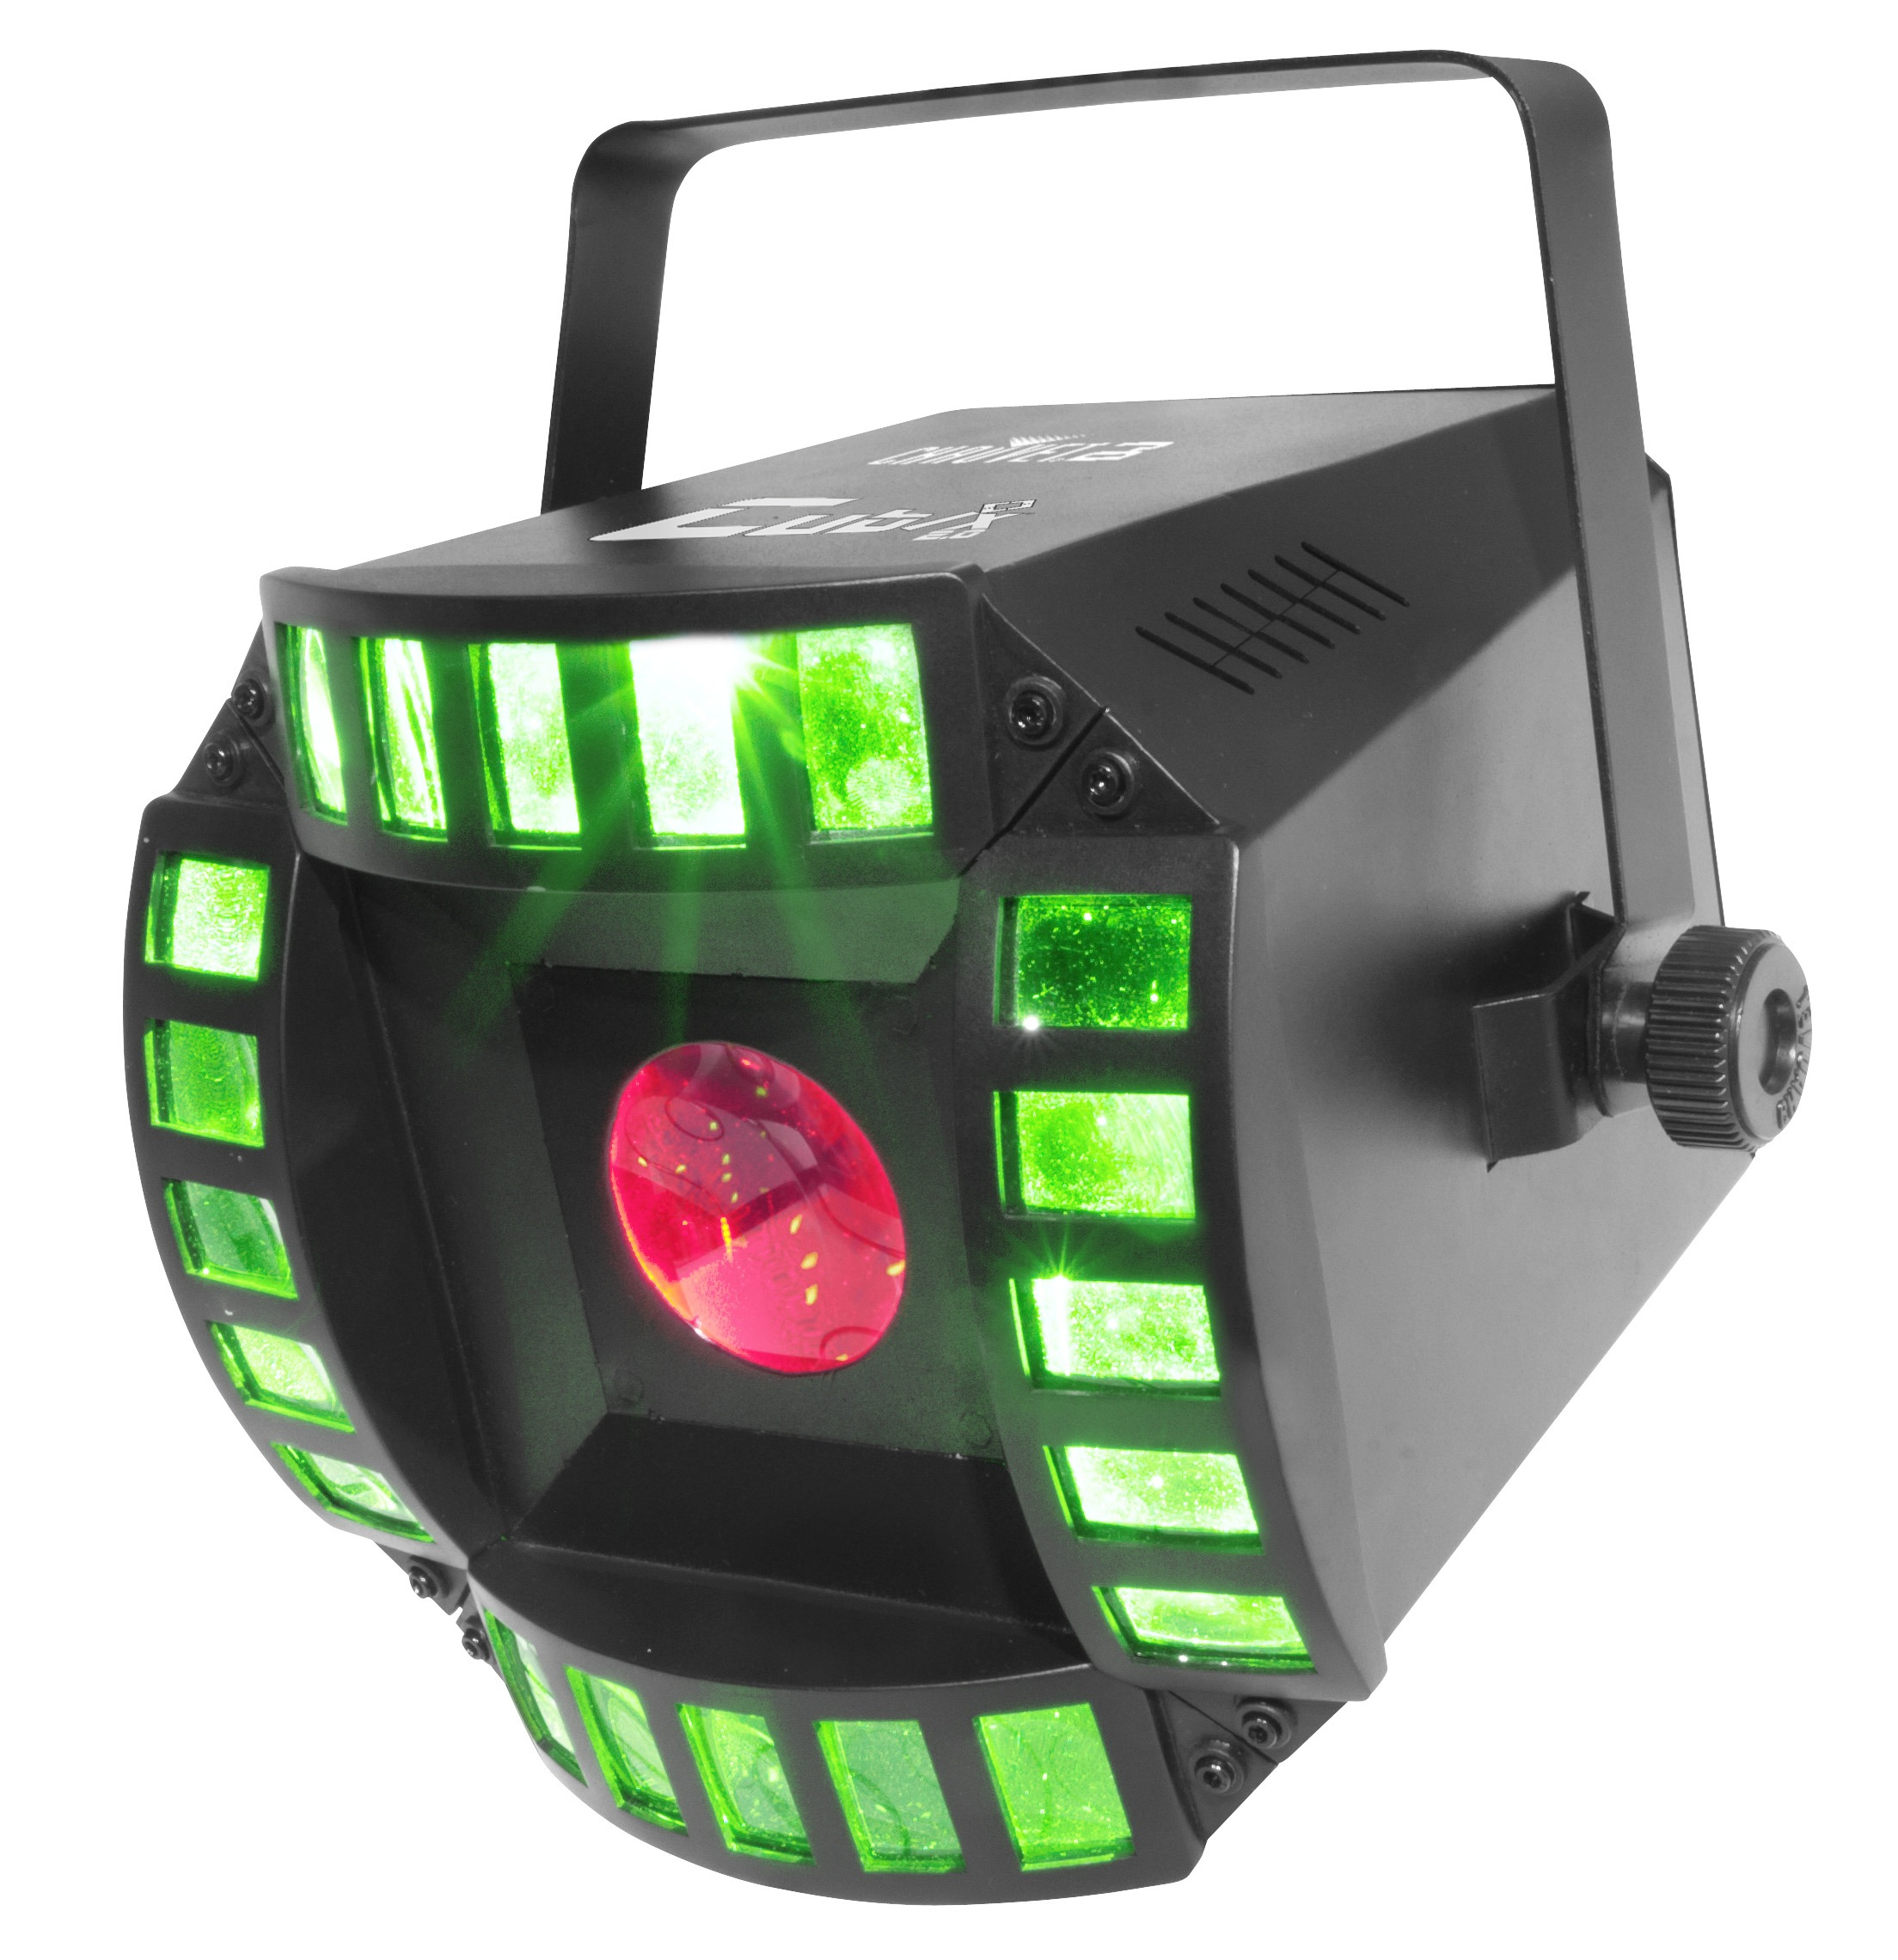 pyxis chauvet lighting professional entertainment mk to and maverick adds inventory wash